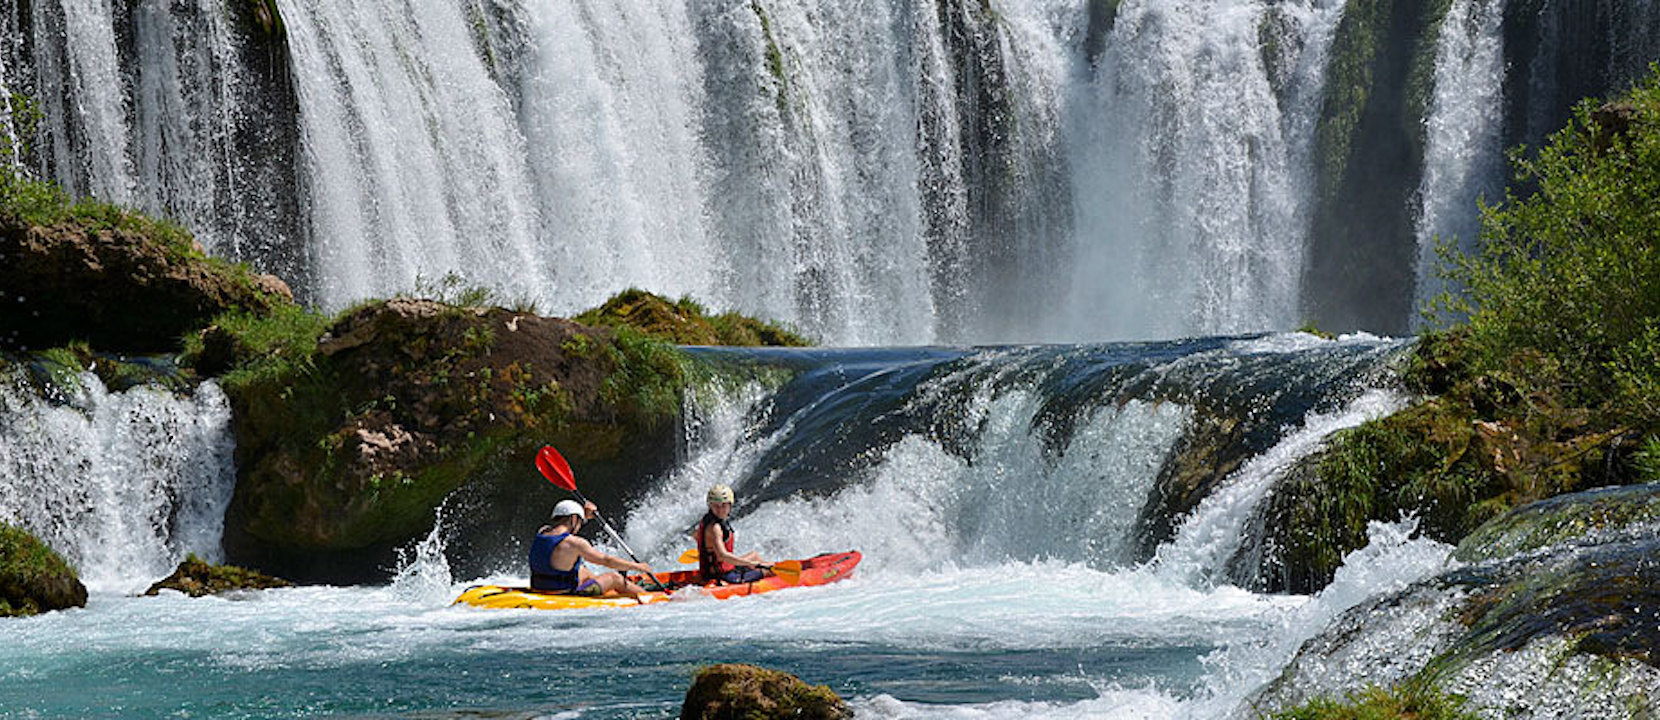 3 Days Dalmatia Weekend Adventure, Cycling, kayaking and rafting, best weekend gataway. JULY , AUGUST High season